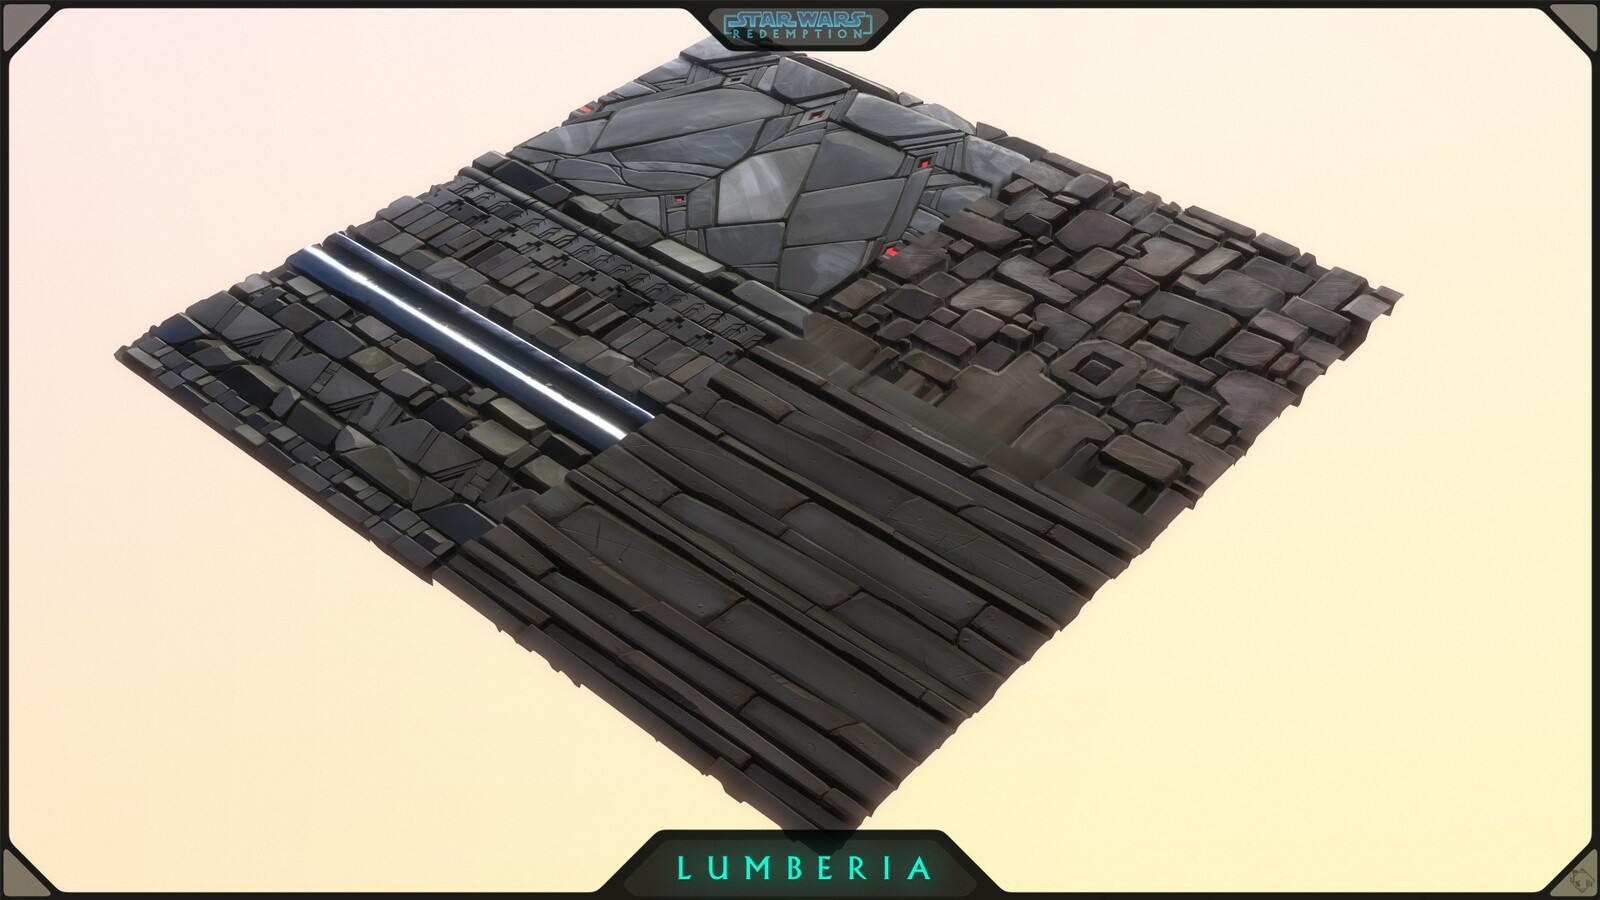 Main atlas used for Dungeon/Temple Assets of Lumberia, combining trims/tiles =)